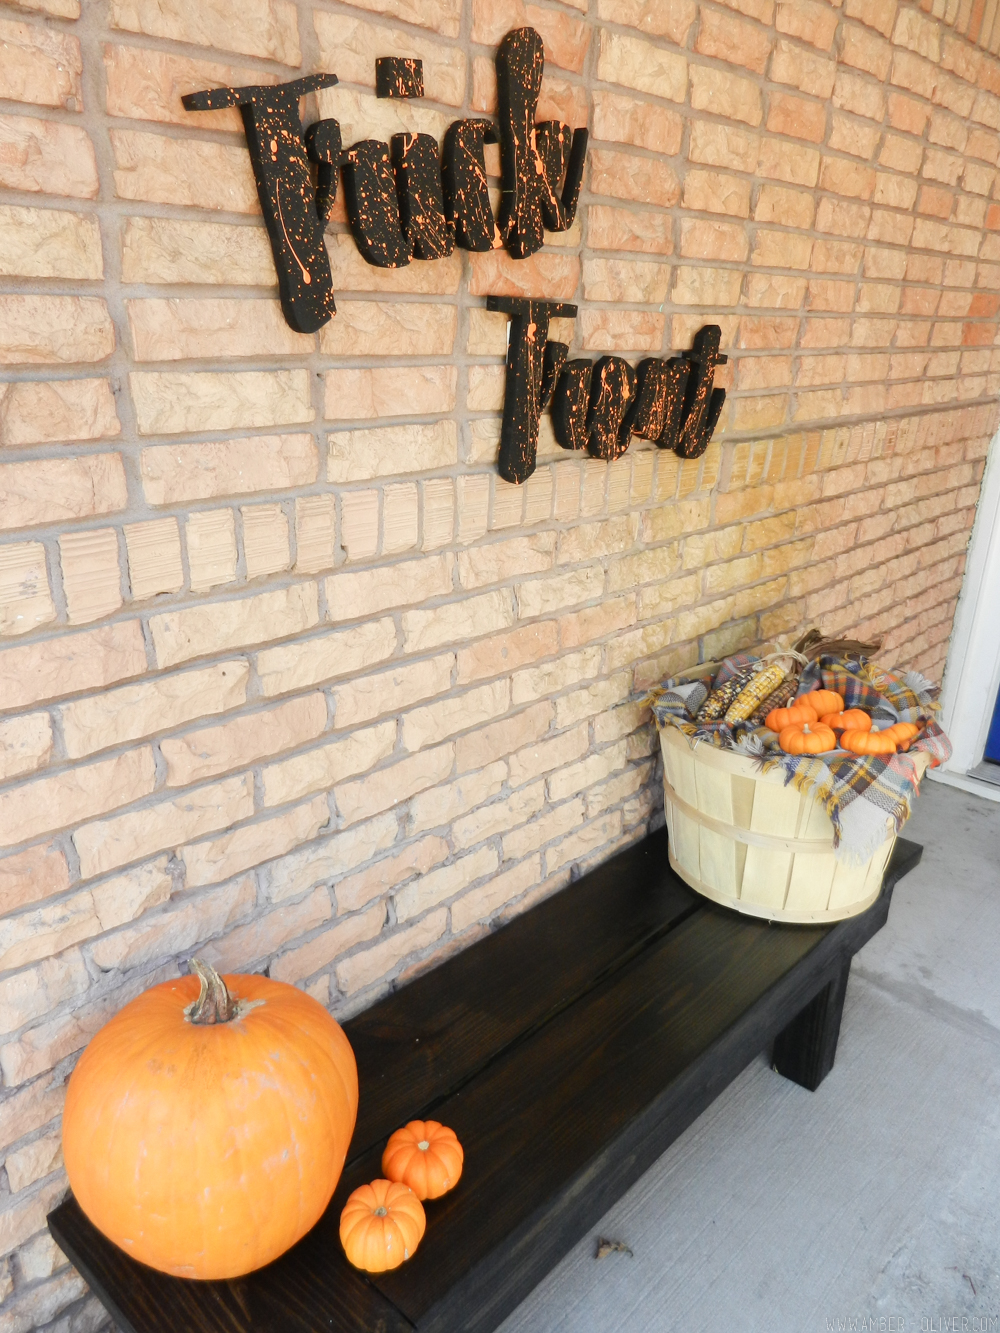 DIY Oversized Words - How to cut Wooden Cut Outs